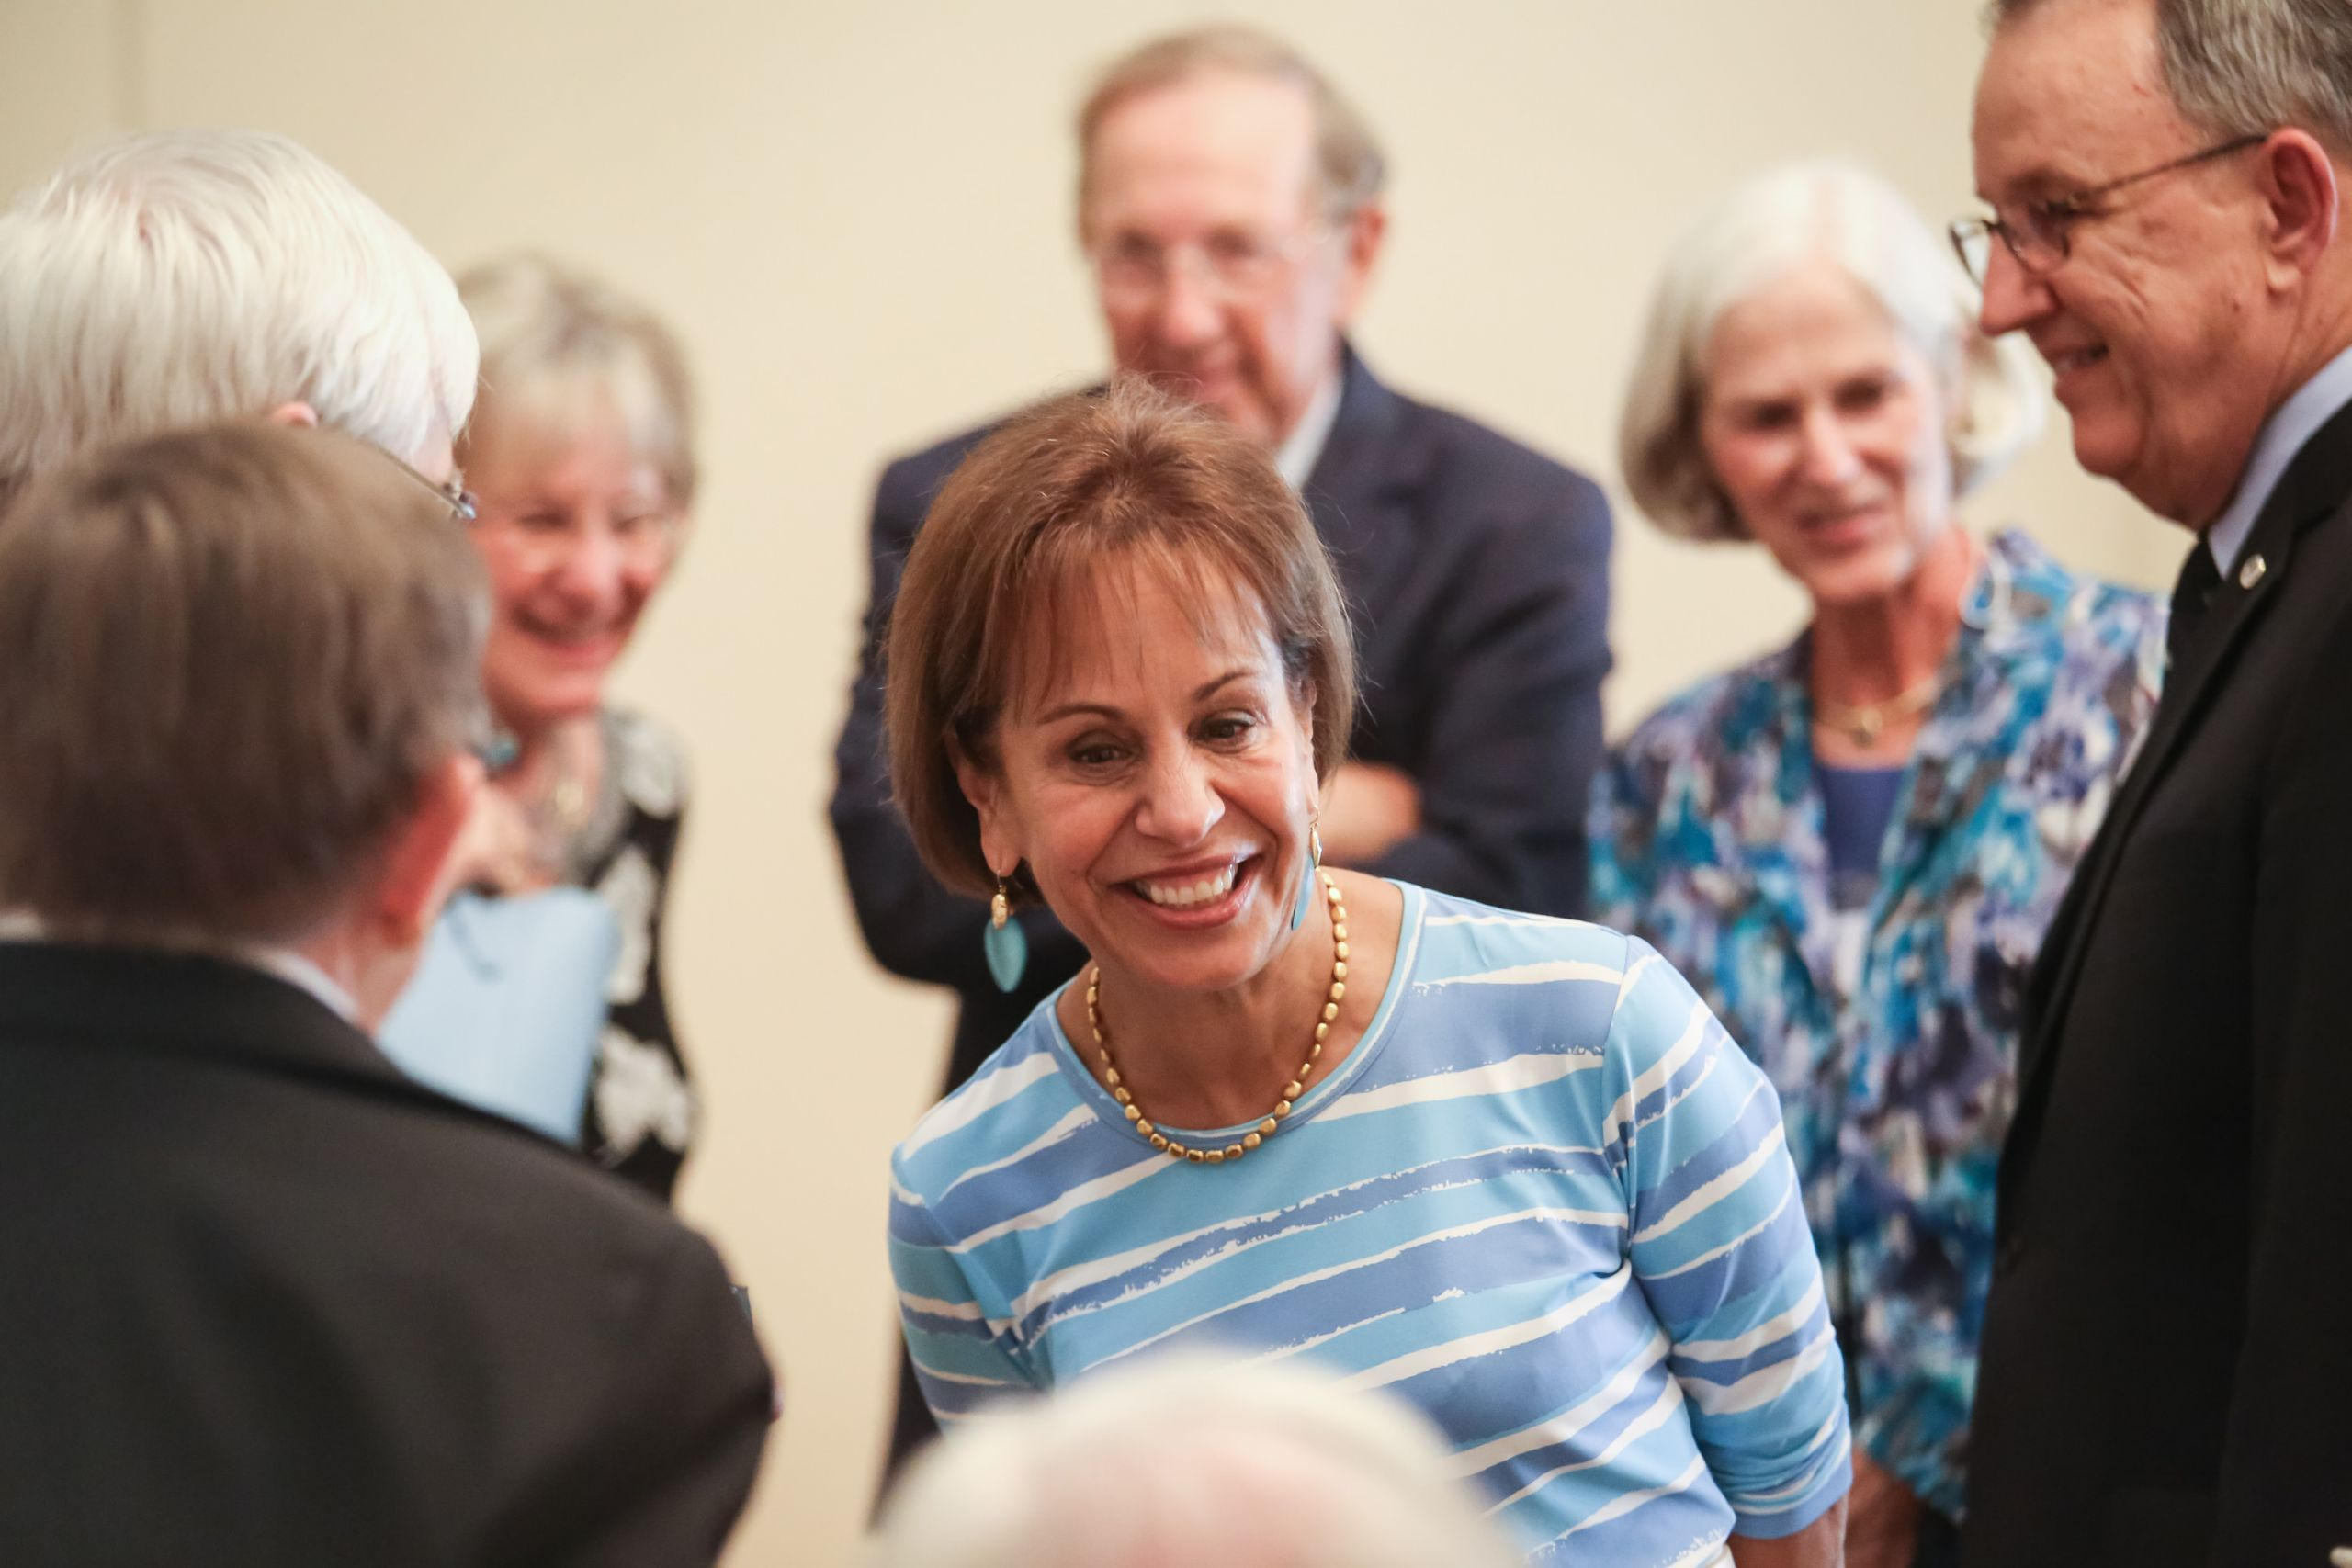 UNC Chancellor Carol L. Folt visited class of '57 alumni and guests at the reunion dinner. (Photo by Ray Black III)